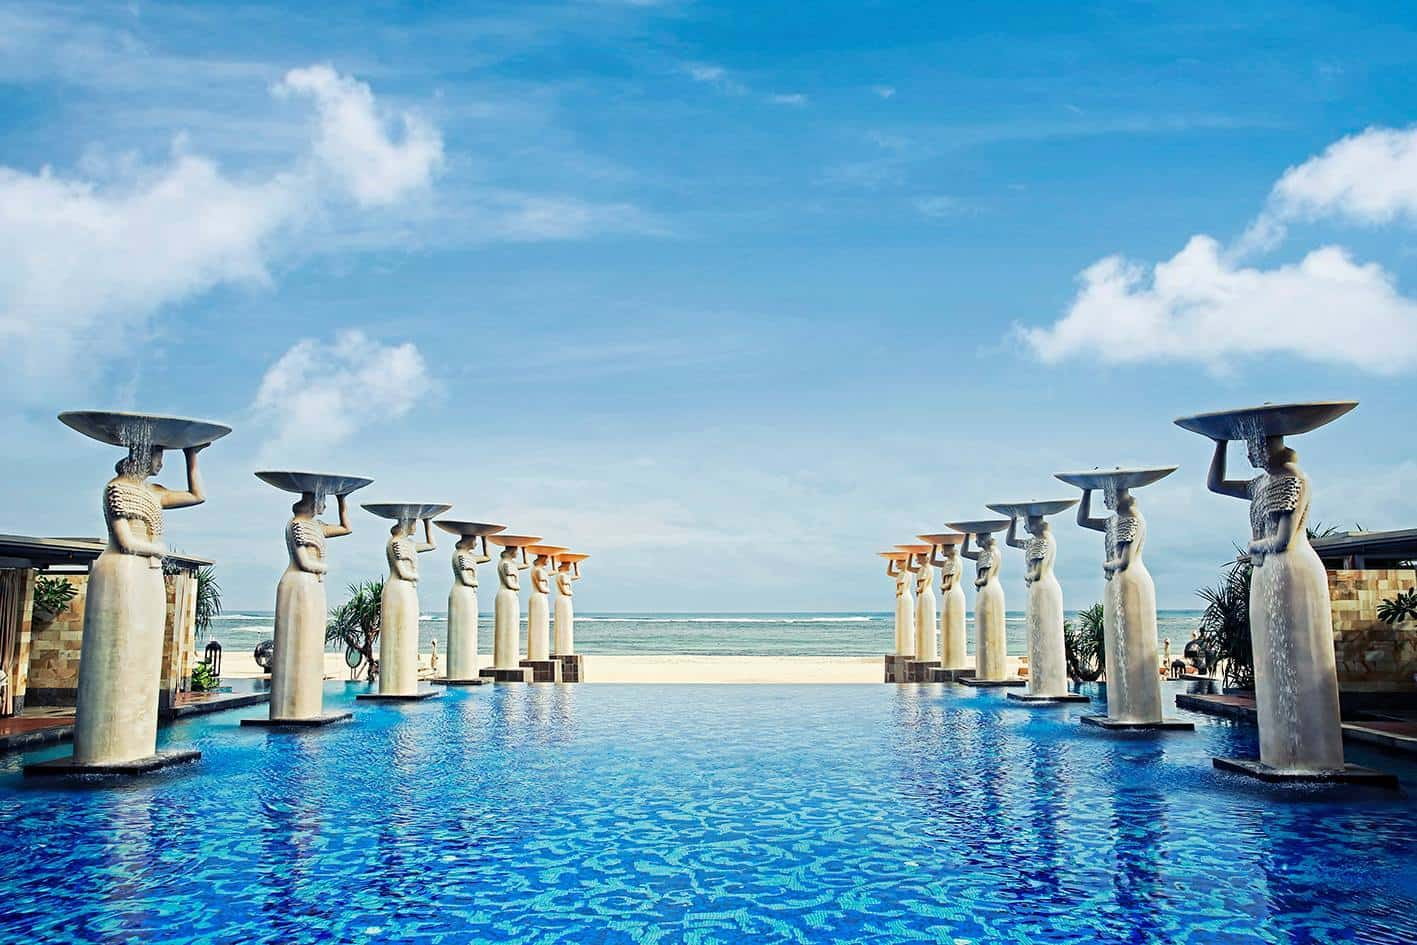 nusa dua chat Nusa dua, built in 1970s, is situated in the southern part of bali, indonesia known as an enclave of large 5-star resorts, it covers 350-hectares of land and .